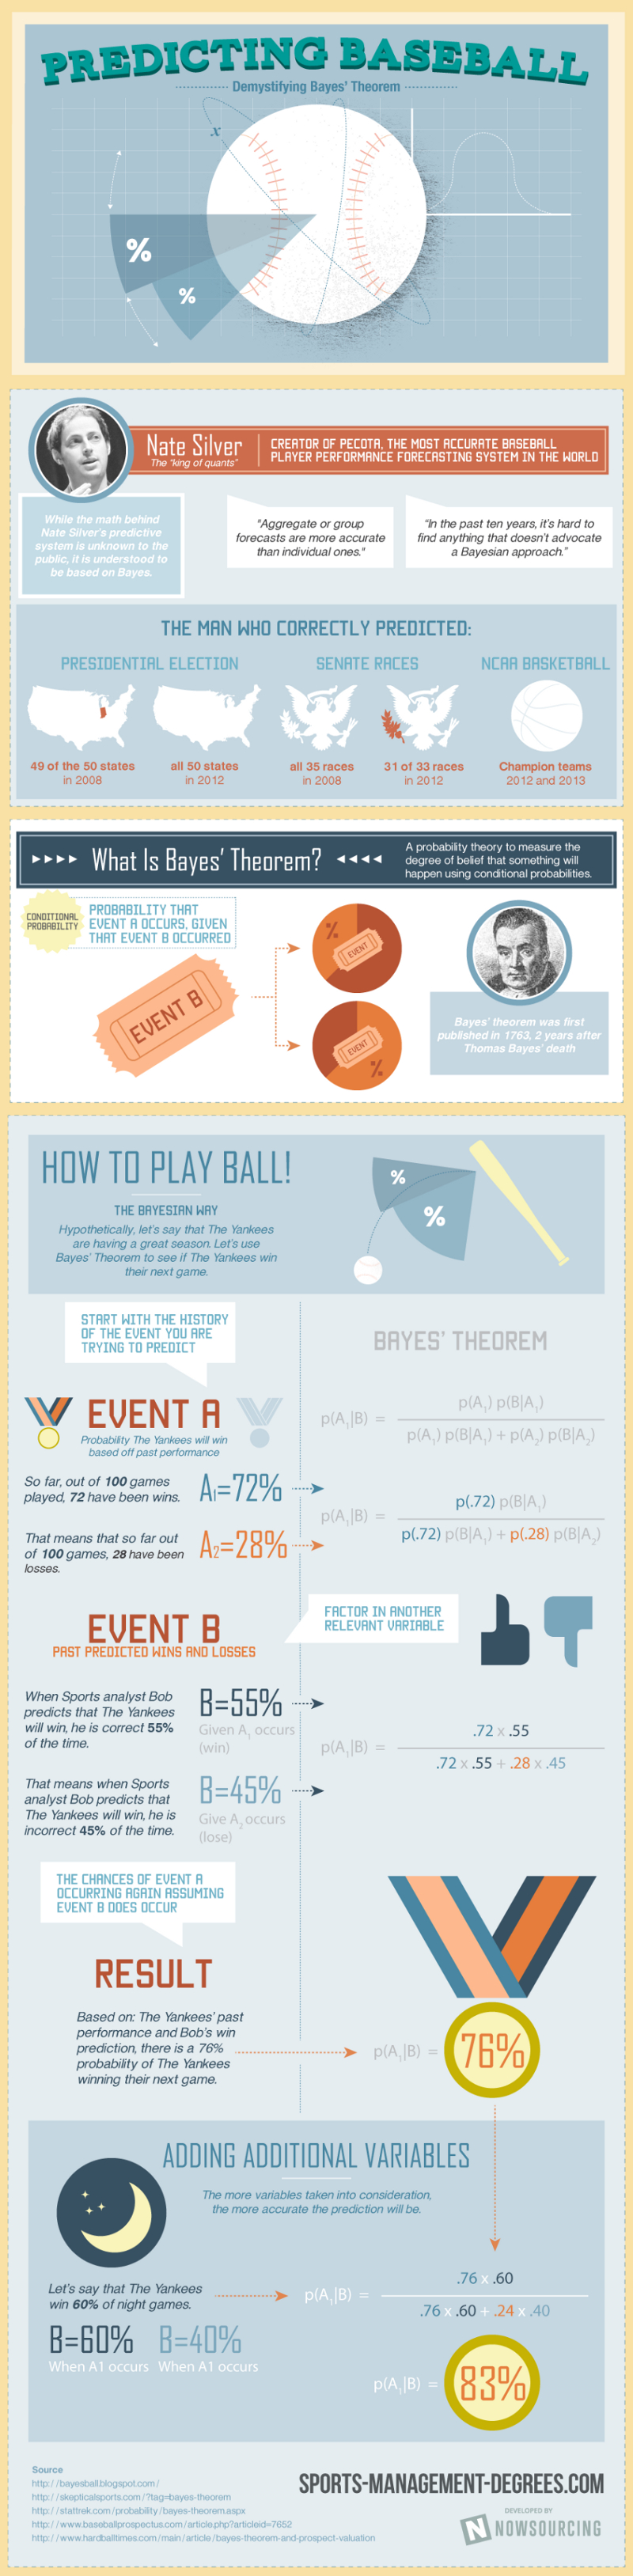 Predicting Baseball Trends and Statistics 41 Funny Intramural Basketball Team Names